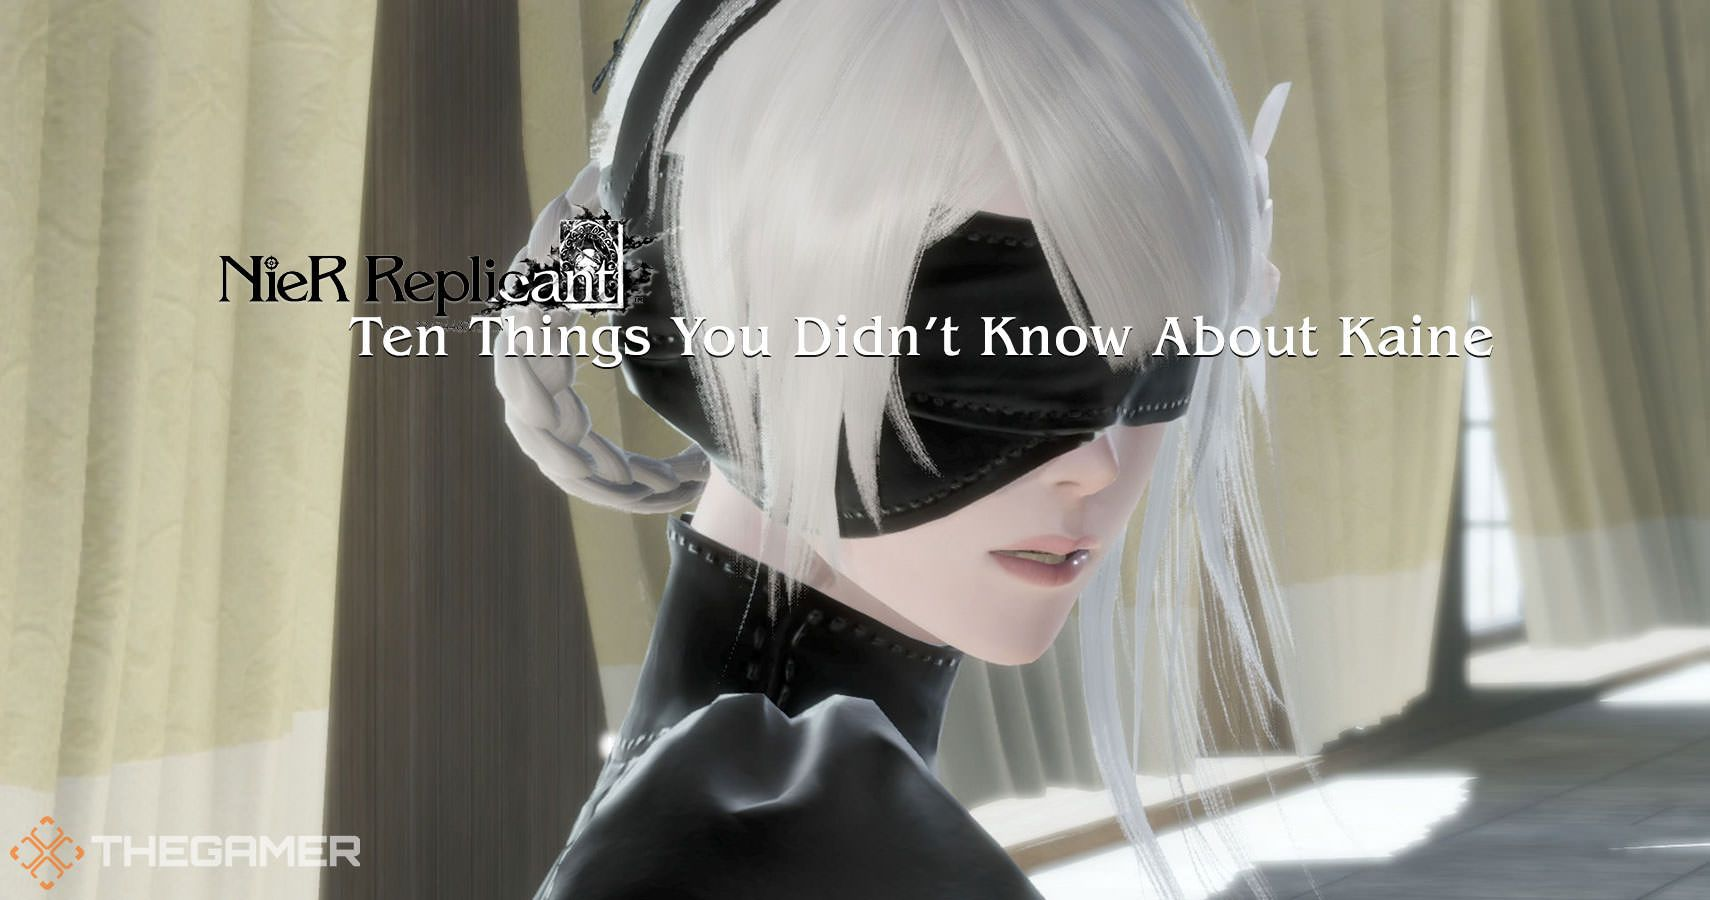 Nier Replicant: 10 Things You Didn't Know About Kaine